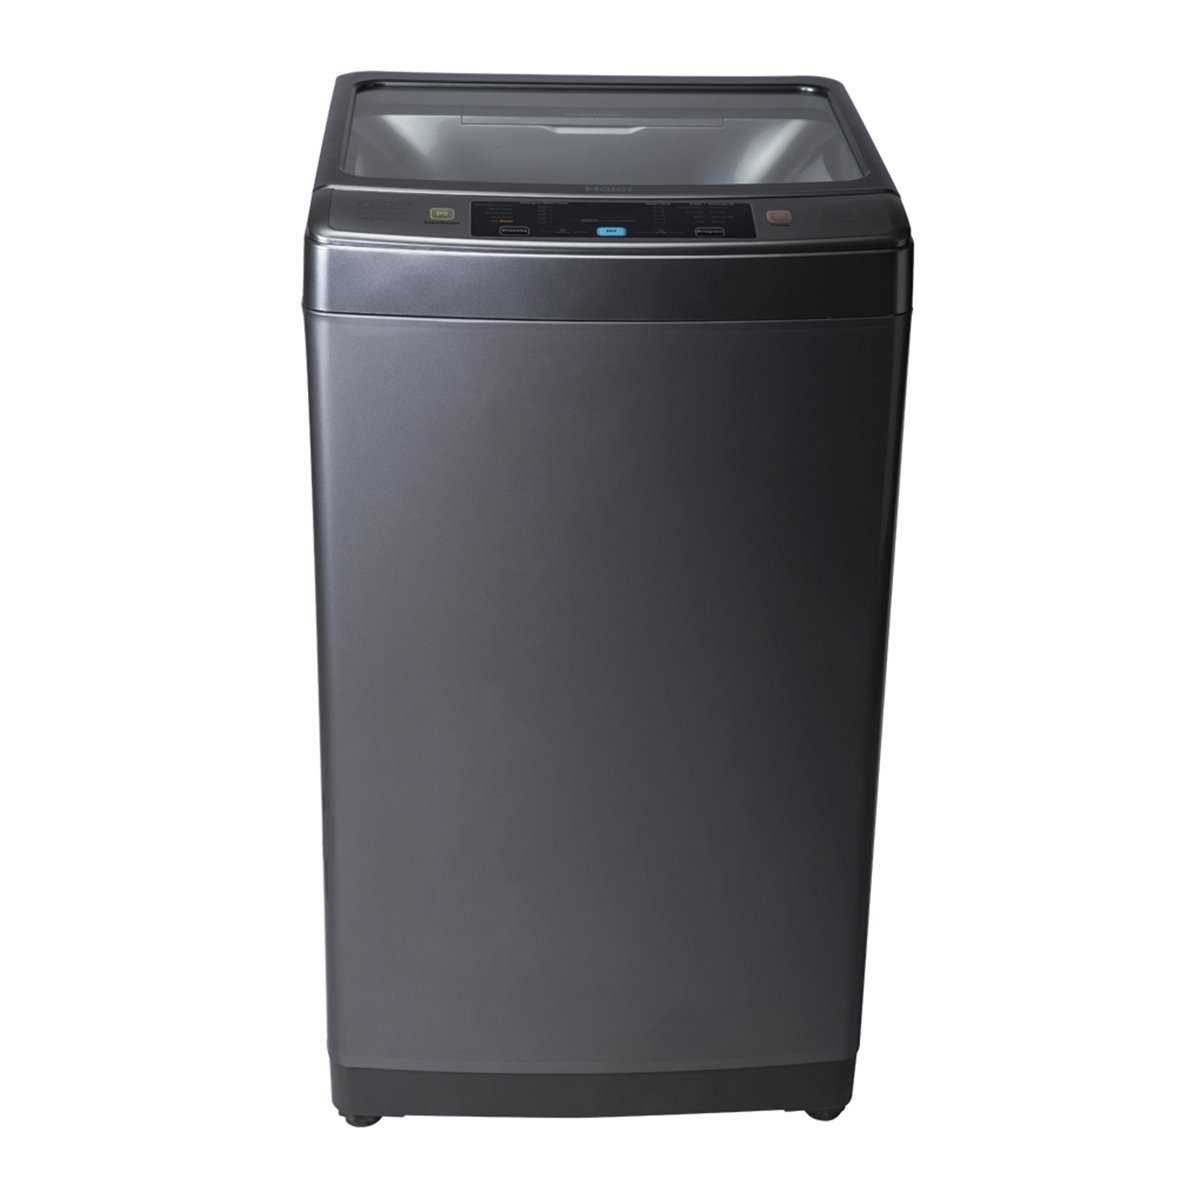 Haier HWM70-789NZP 7 Kg Fully Automatic Top Loading Washing Machine